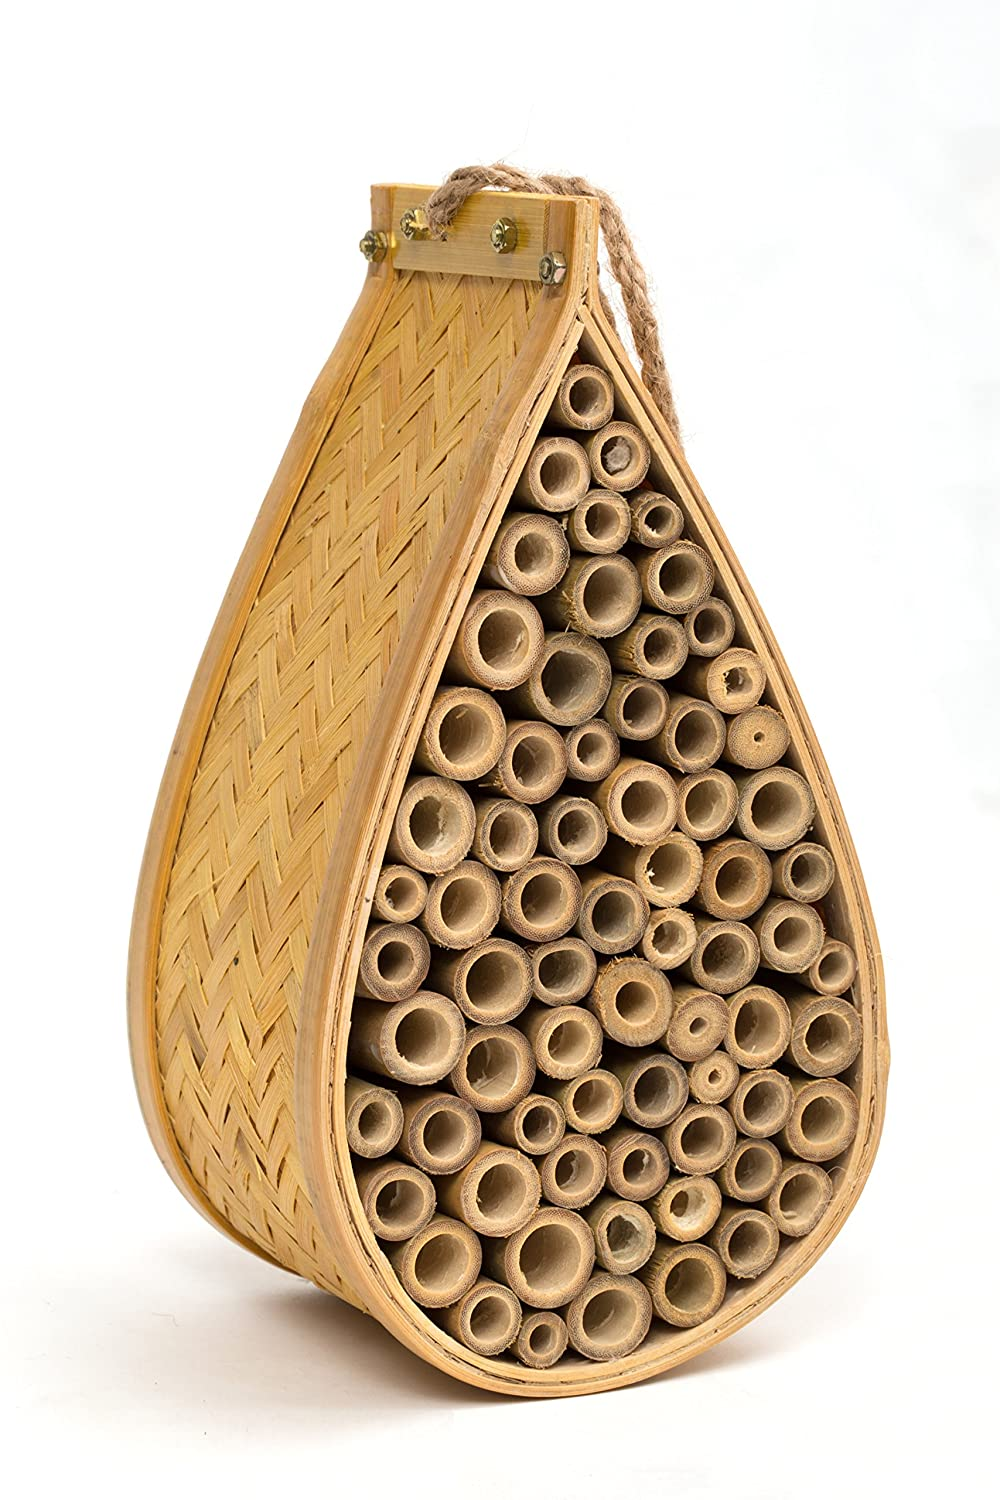 SANGER Outdoor Garden Bee House and Insect Home - Ideal habitat for Orchard, Mason, Solitary, Carpenter, Honey, Other Native Pollinator Bees and Bugs. Product comes complete with bonus rope hanger SA-BHS-1426-1-BR